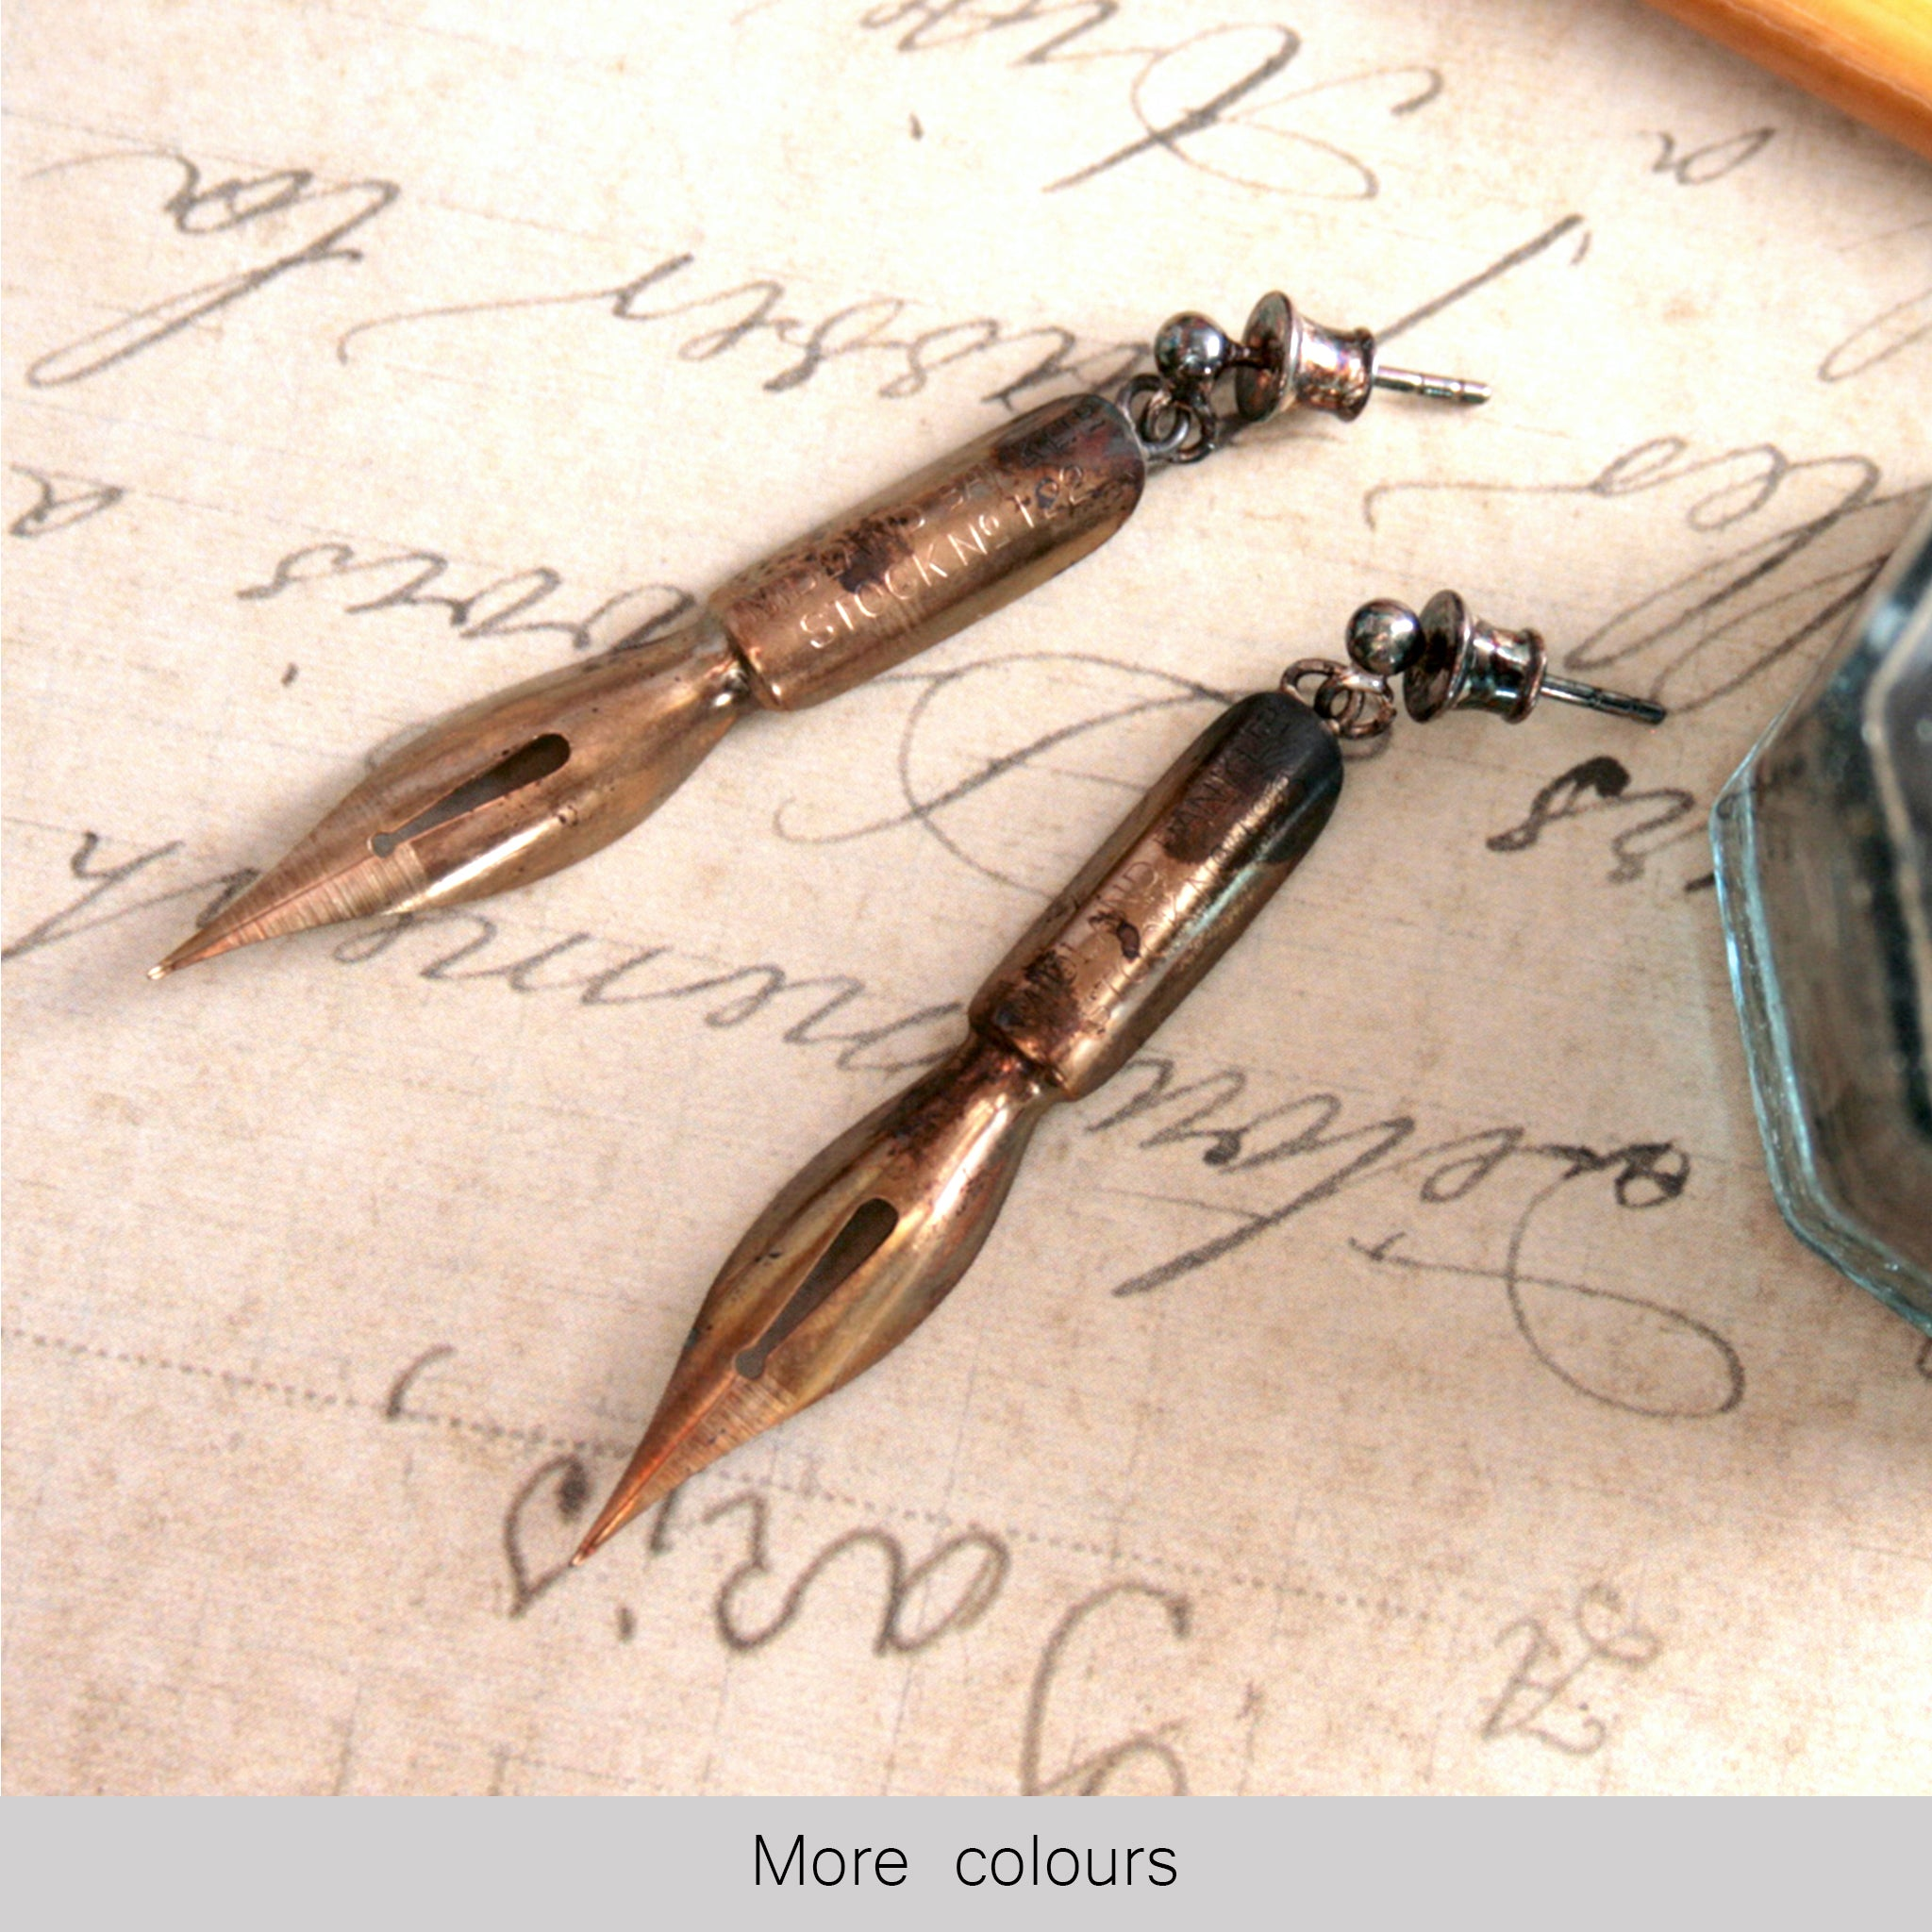 Long Dangle Pen Nib Earrings in gold color